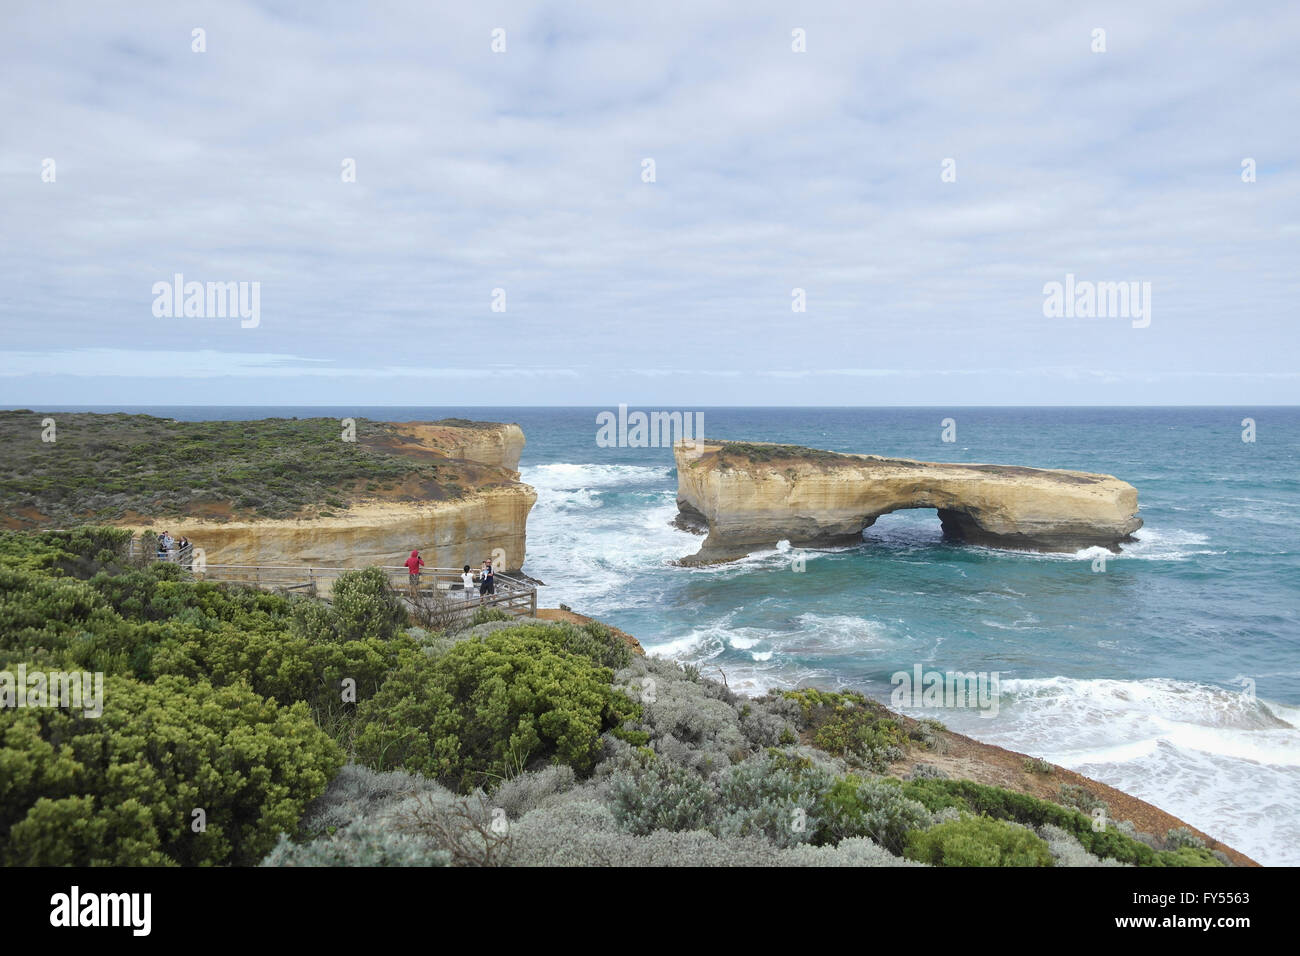 London Arch at the famous Great Ocean Road - Australia - Stock Image